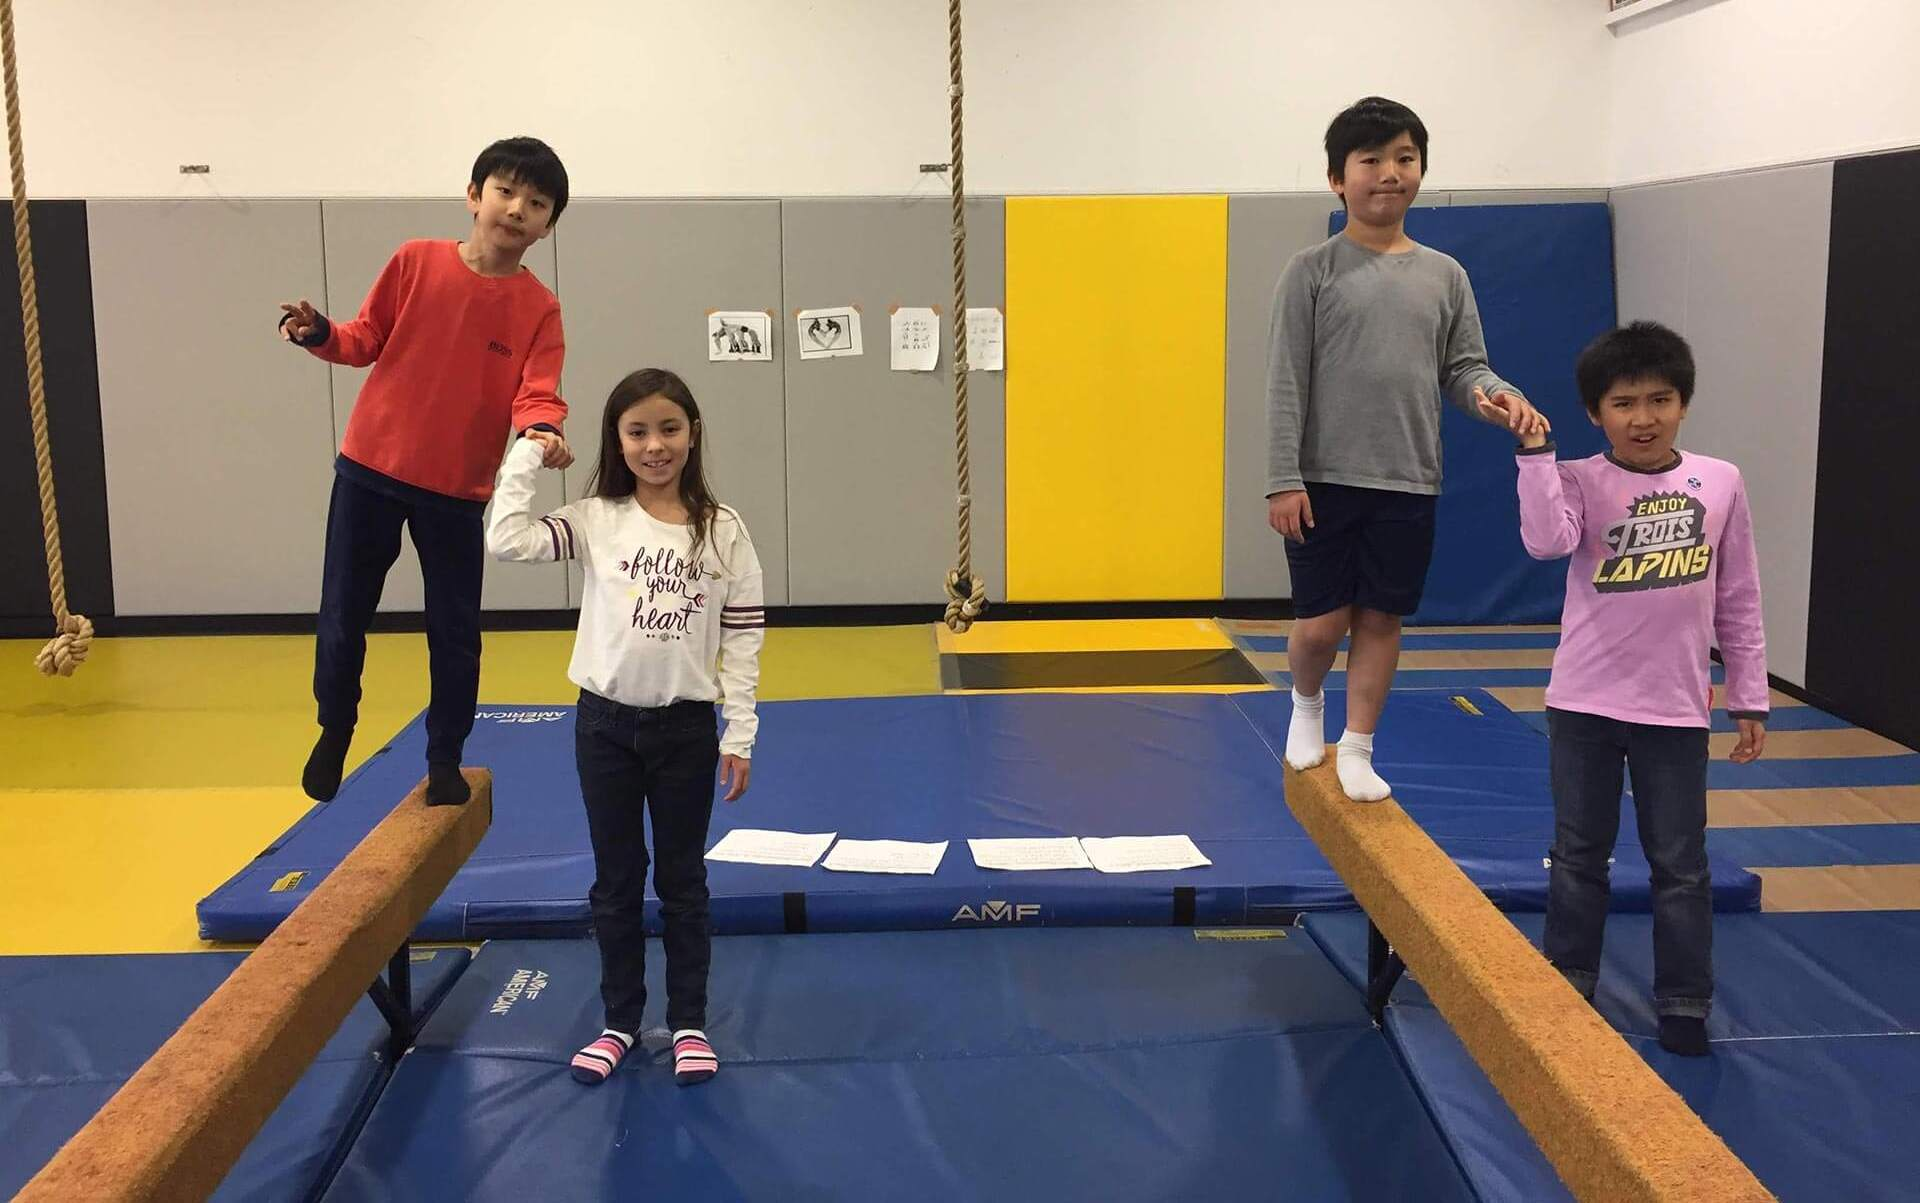 Elementary Students in the Wrestling & Gymnastics Room